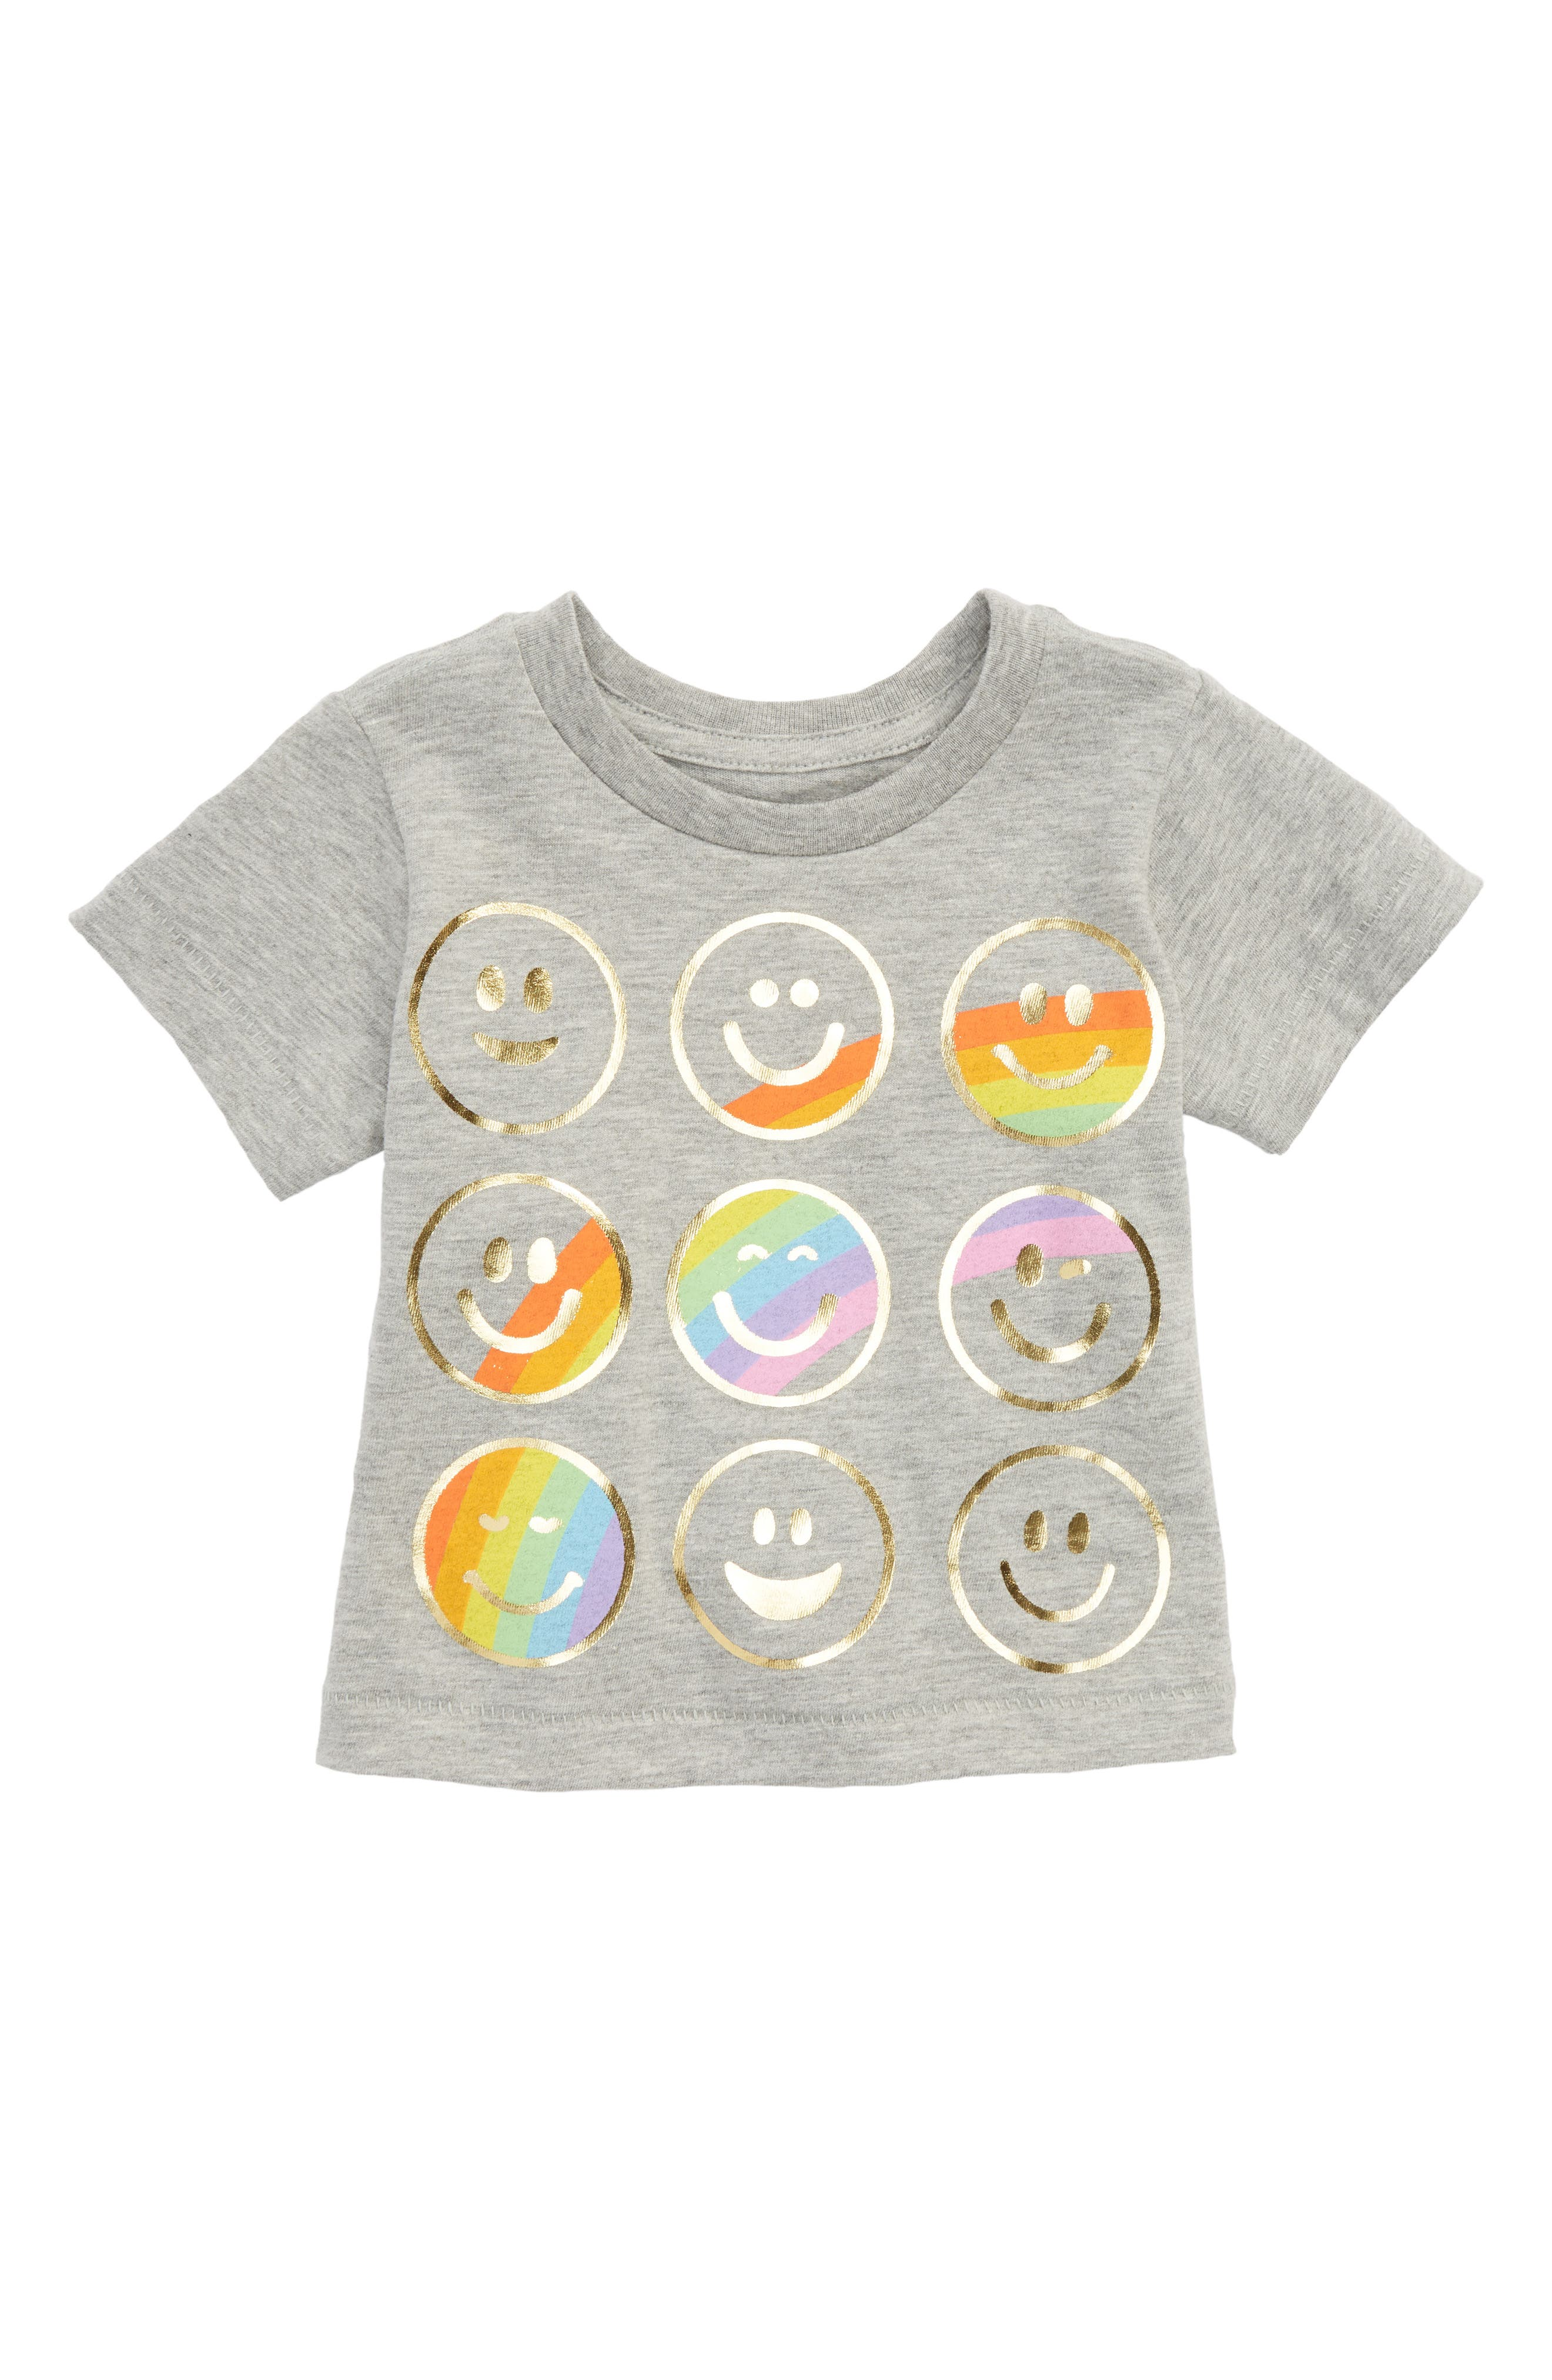 Emoji Graphic Tee,                             Main thumbnail 1, color,                             Light Heather Grey